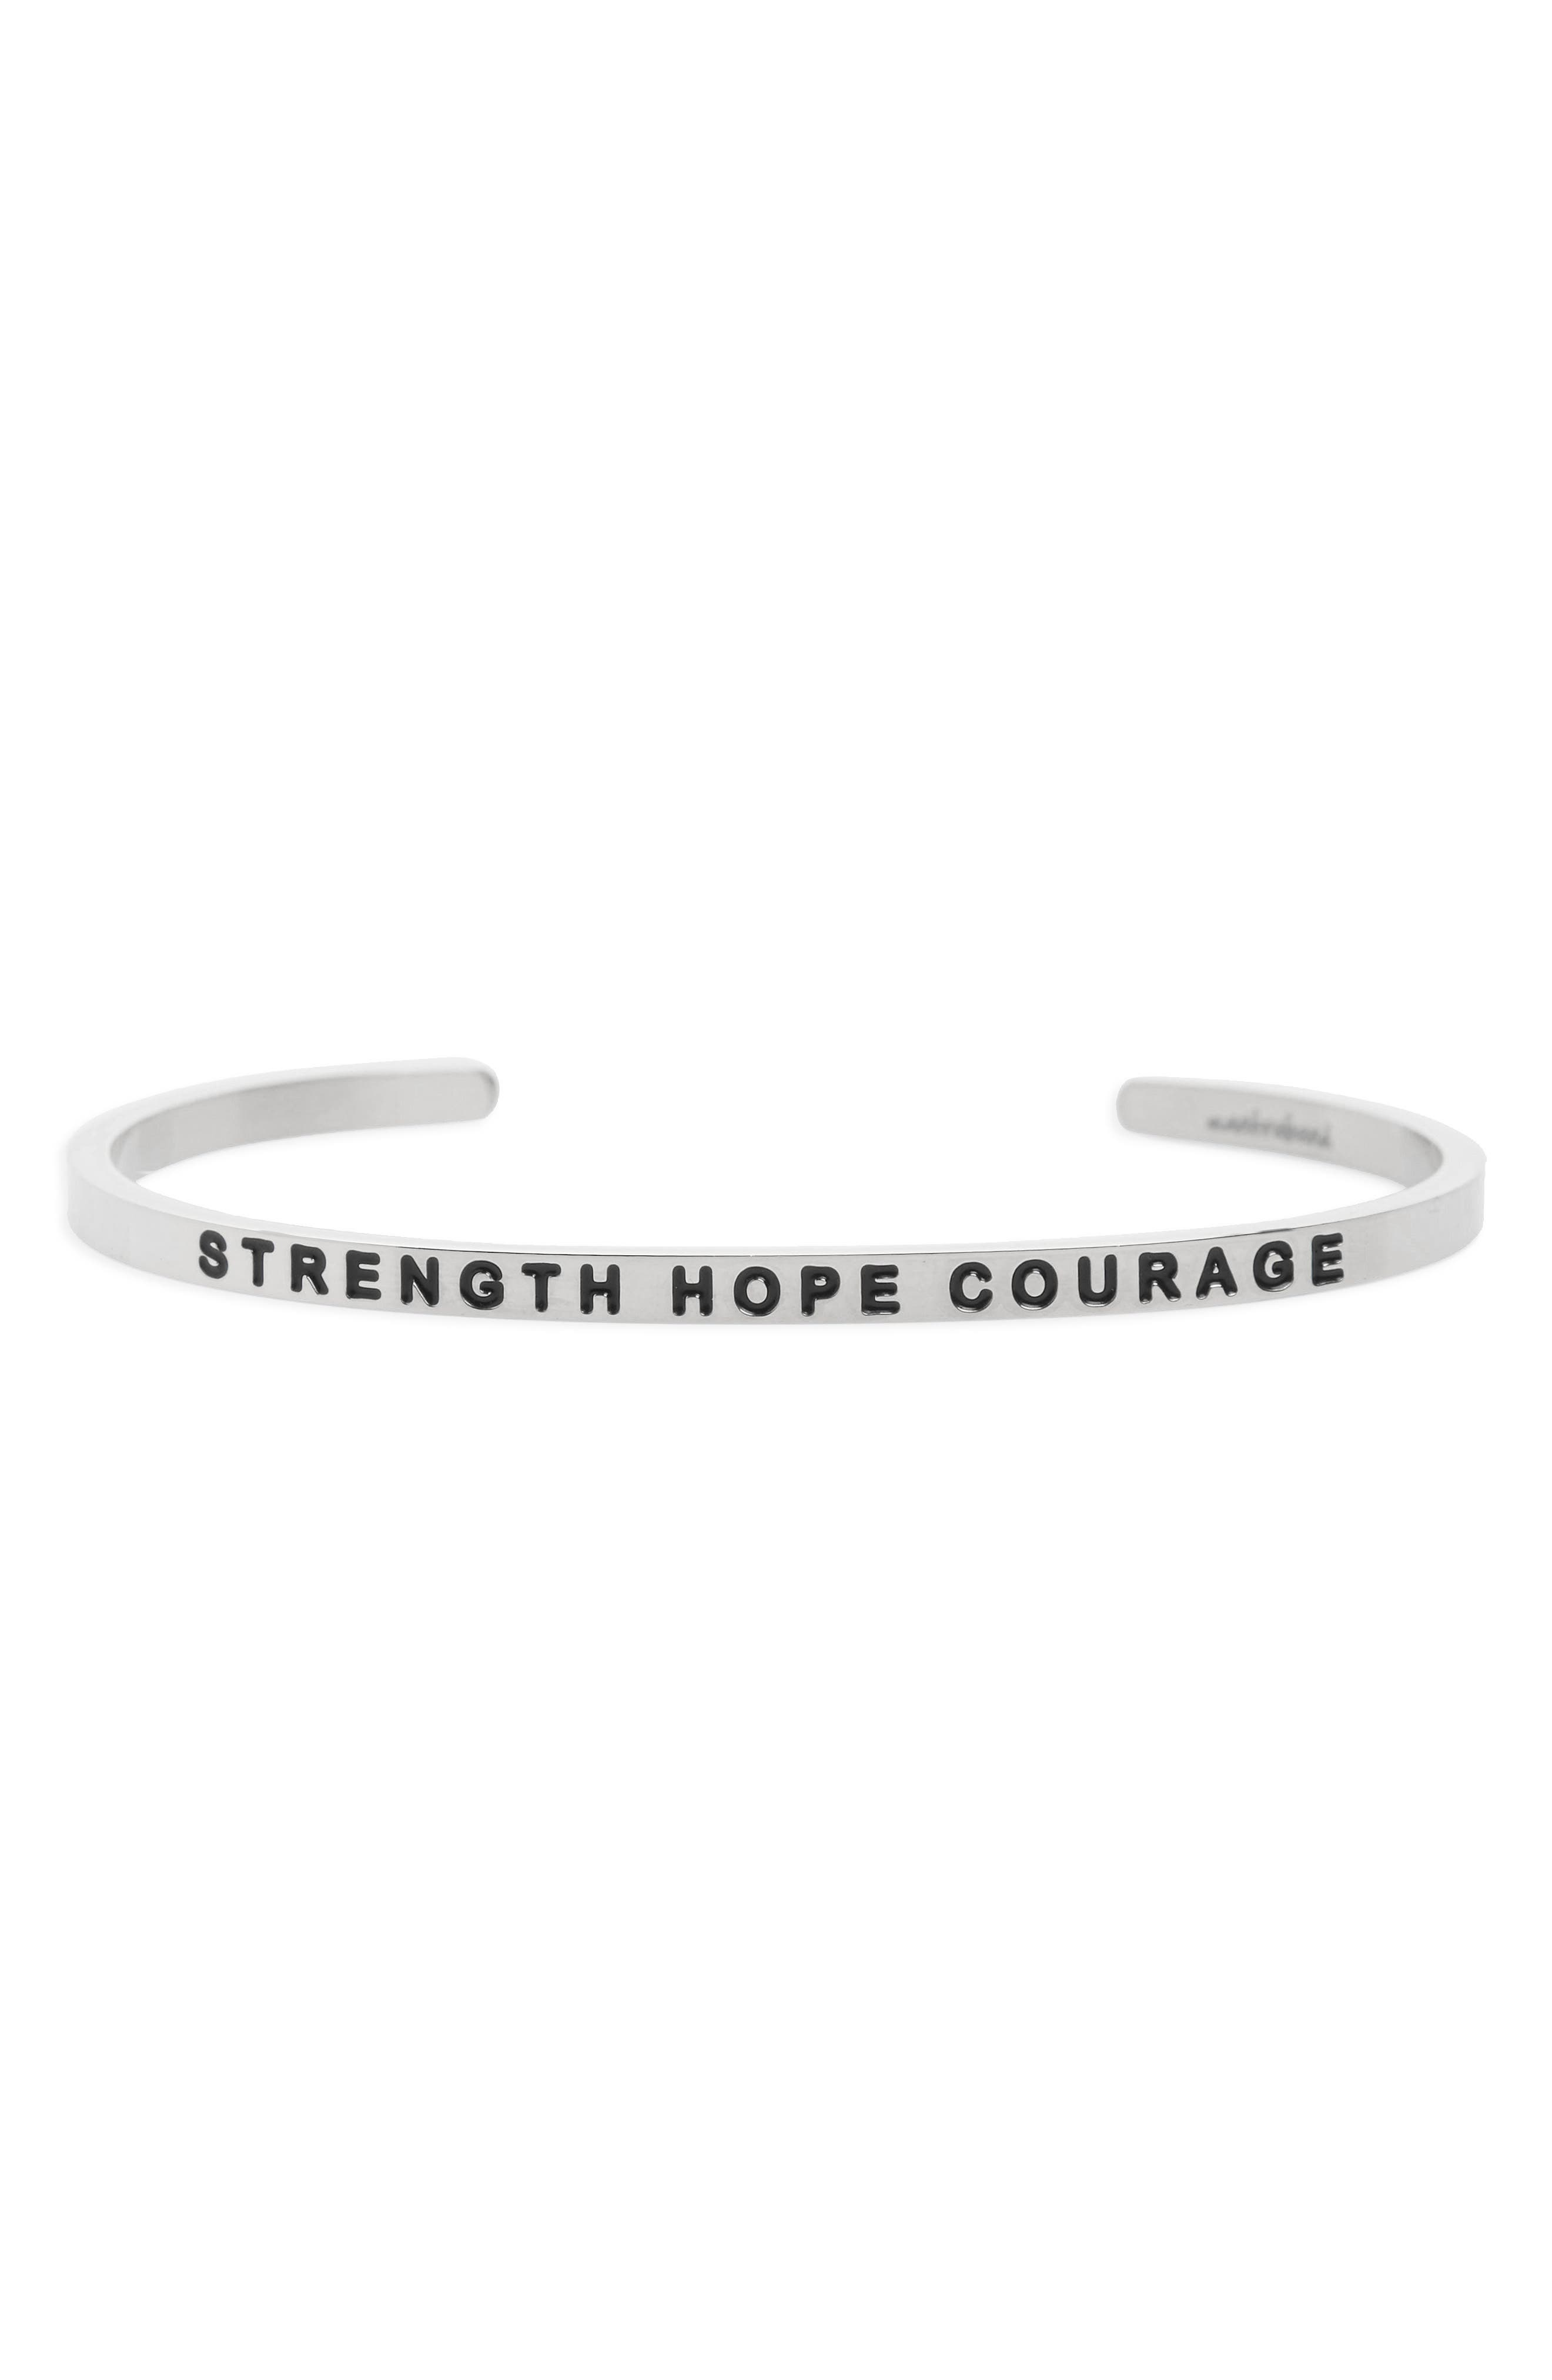 Strength Hope Courage Engraved Cuff,                             Main thumbnail 1, color,                             040